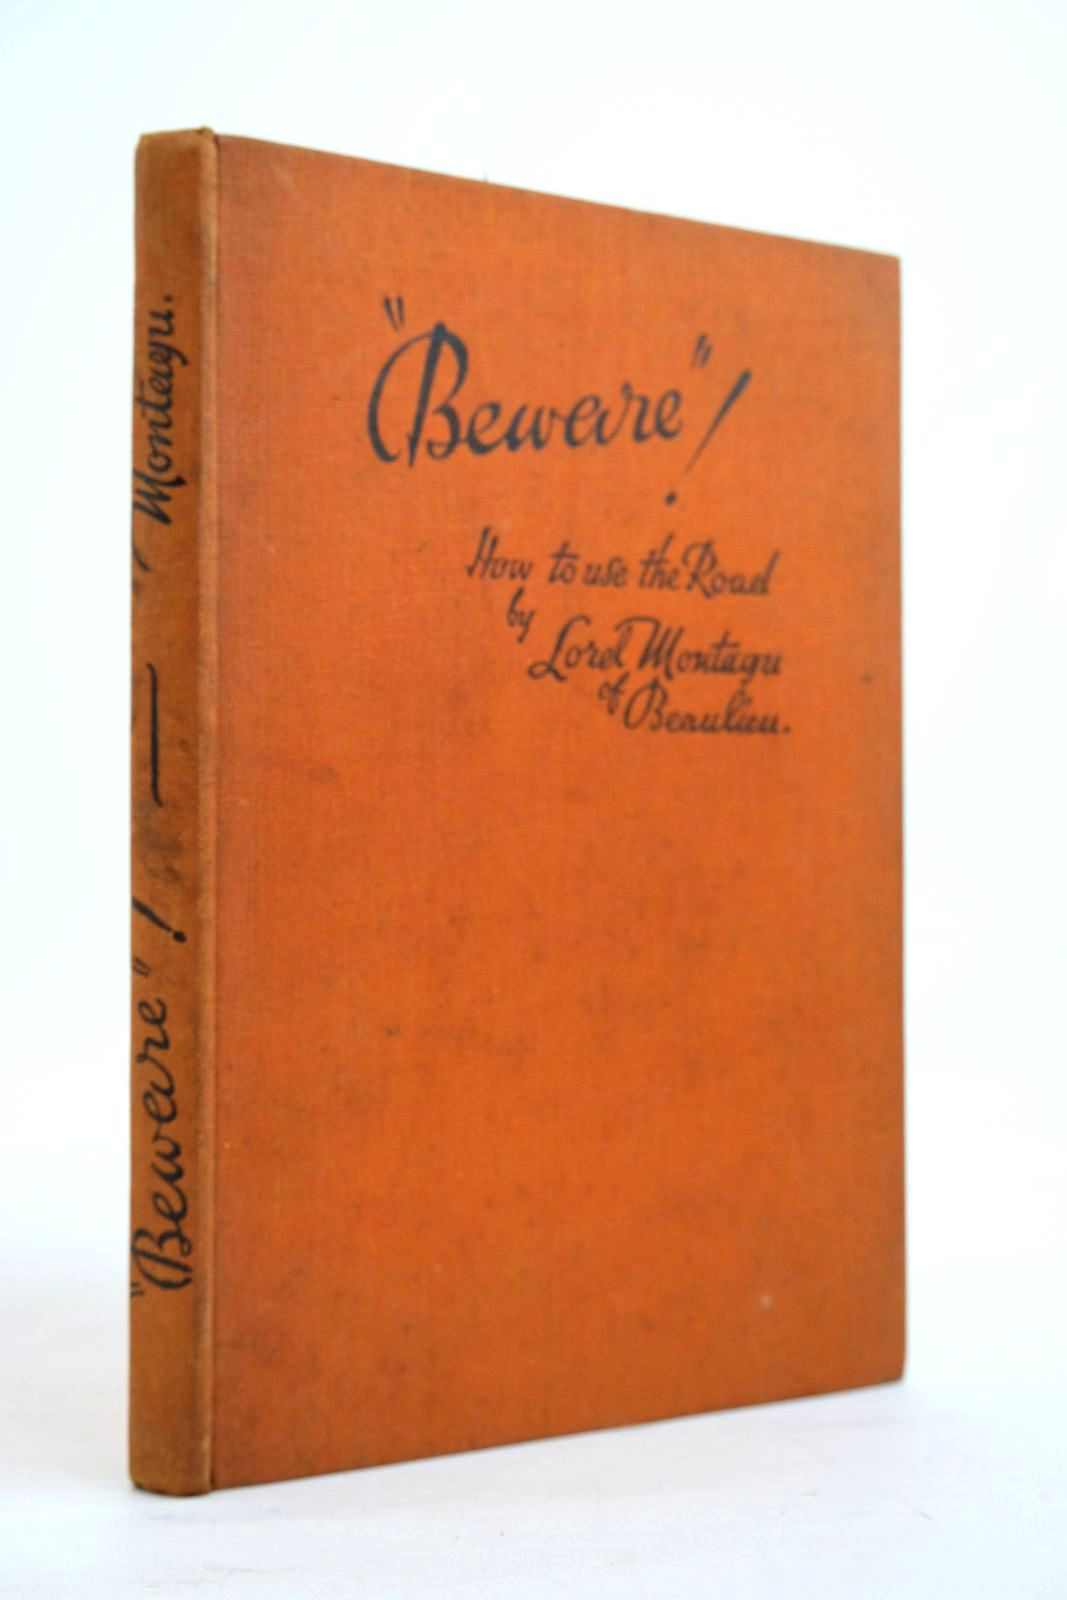 Photo of BEWARE OR HOW TO USE THE ROADS written by Montagu, Lord published by George Gill & Sons Limited (STOCK CODE: 2134611)  for sale by Stella & Rose's Books